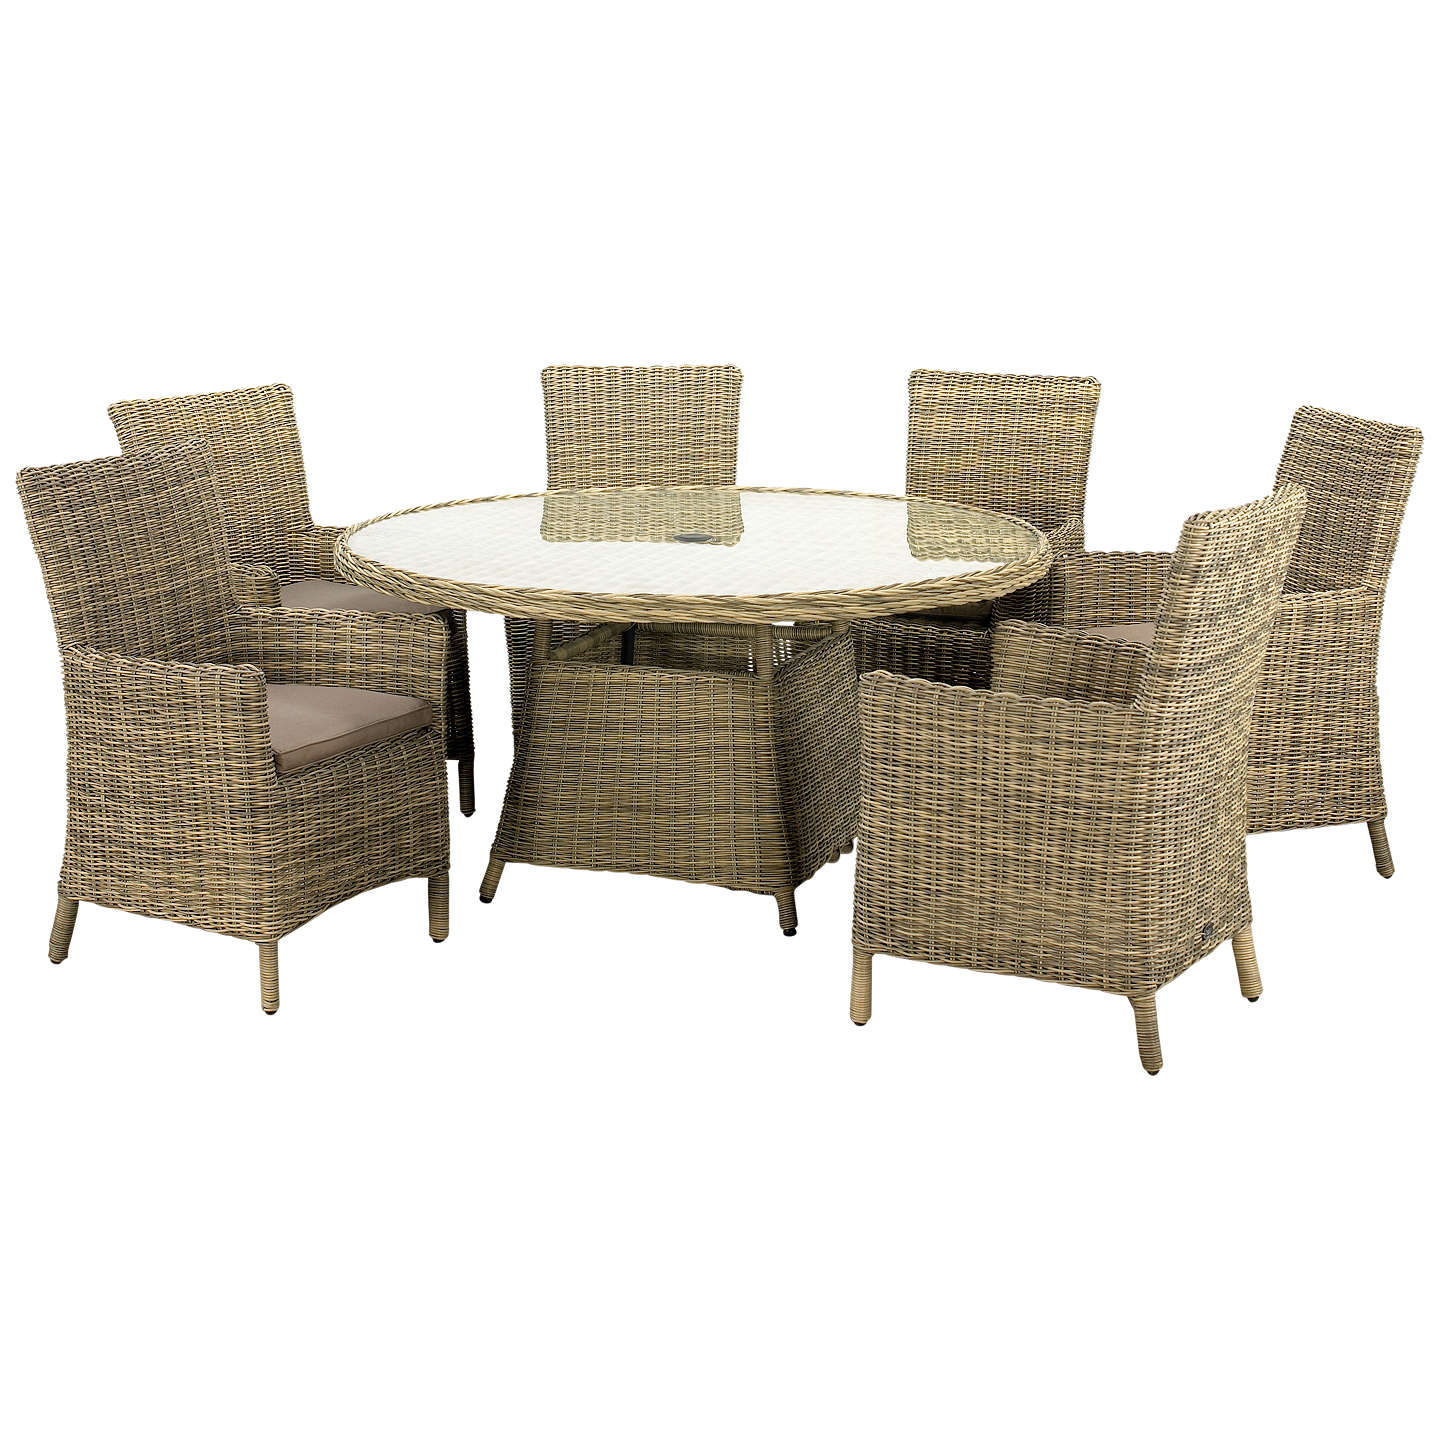 Royalcraft Wentworth Carver 6-Seater Garden Dining Table